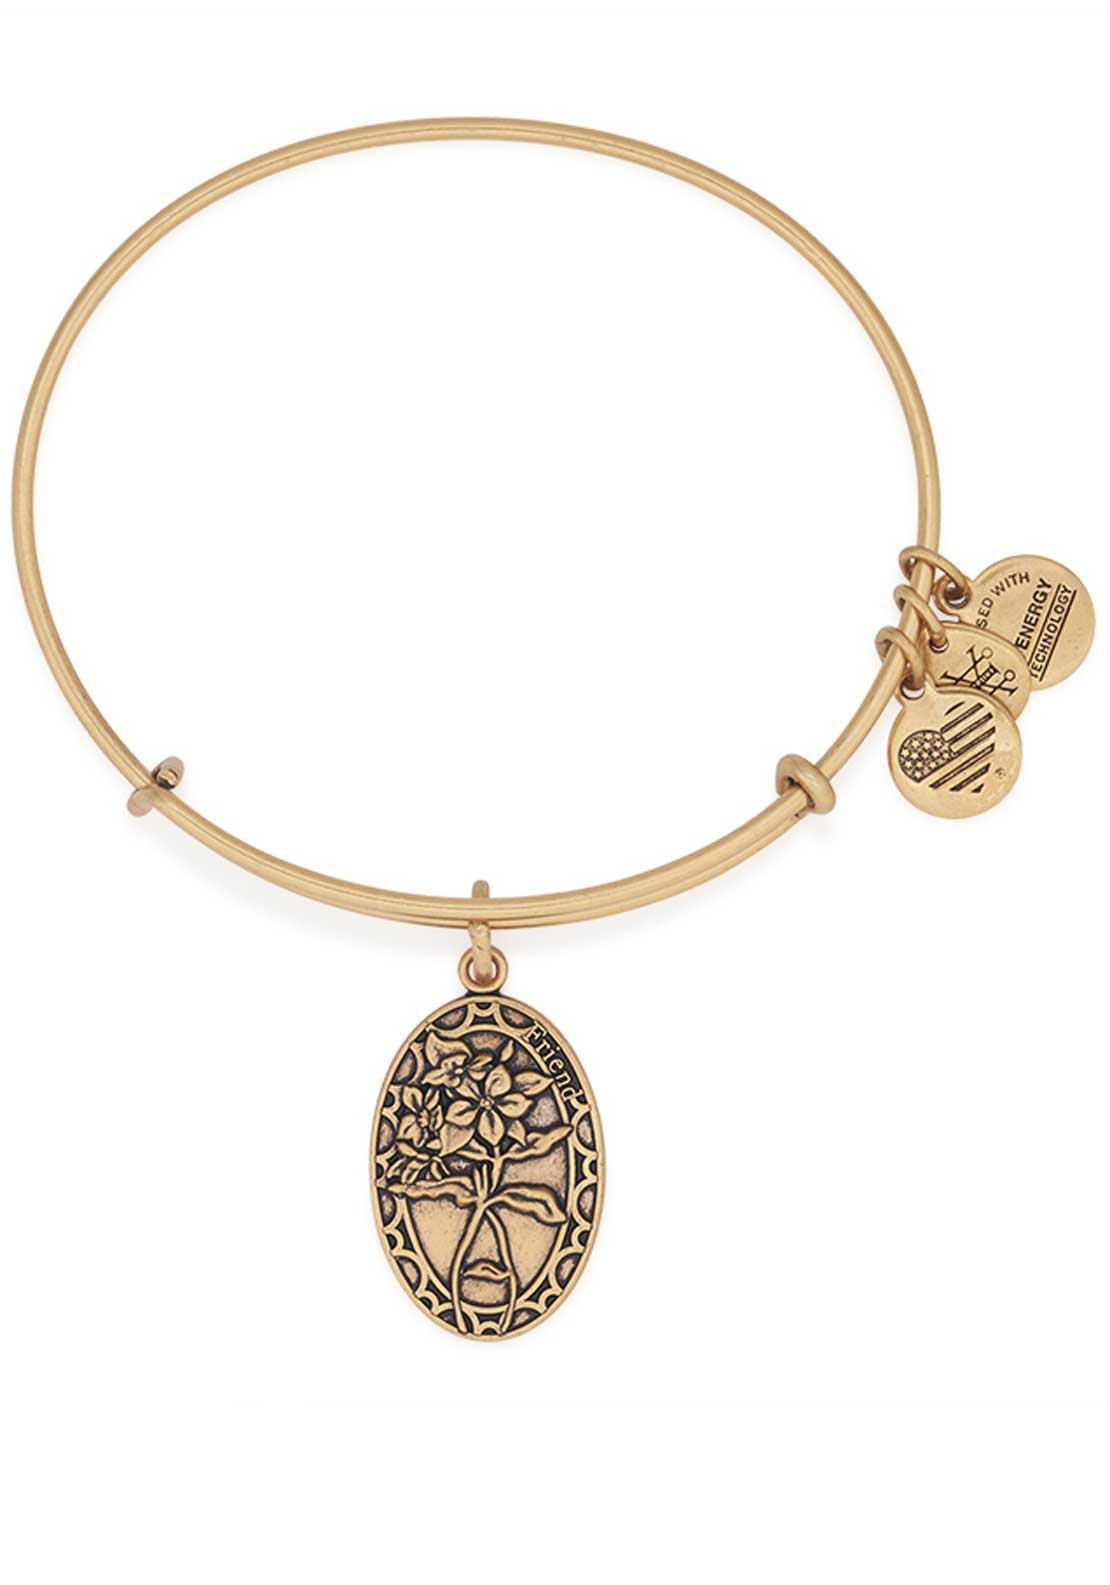 Alex and Ani Because I love you Friend Periwinkle Bracelet, Gold